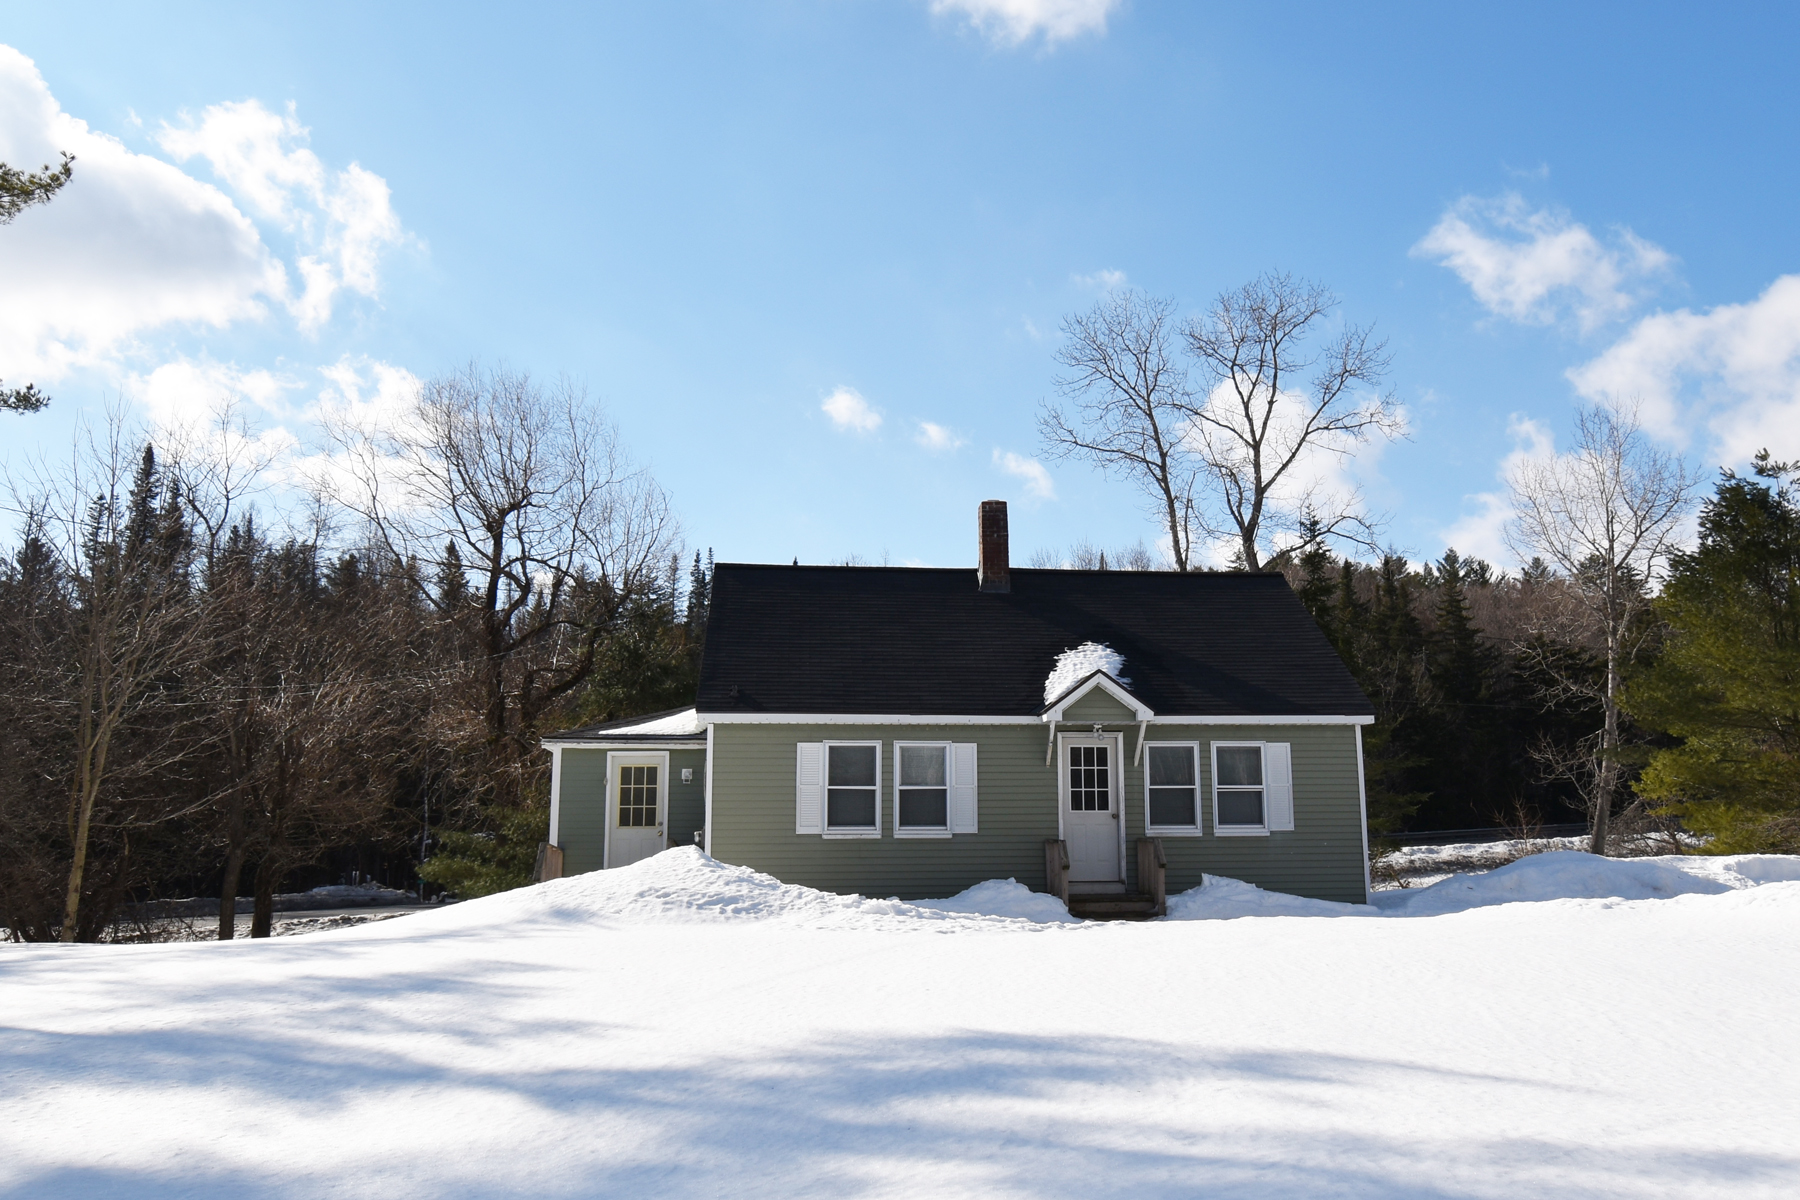 Single Family Home for Sale at Affordable Cape Home 103 Shunpike Road Rd Mount Holly, Vermont 05758 United States